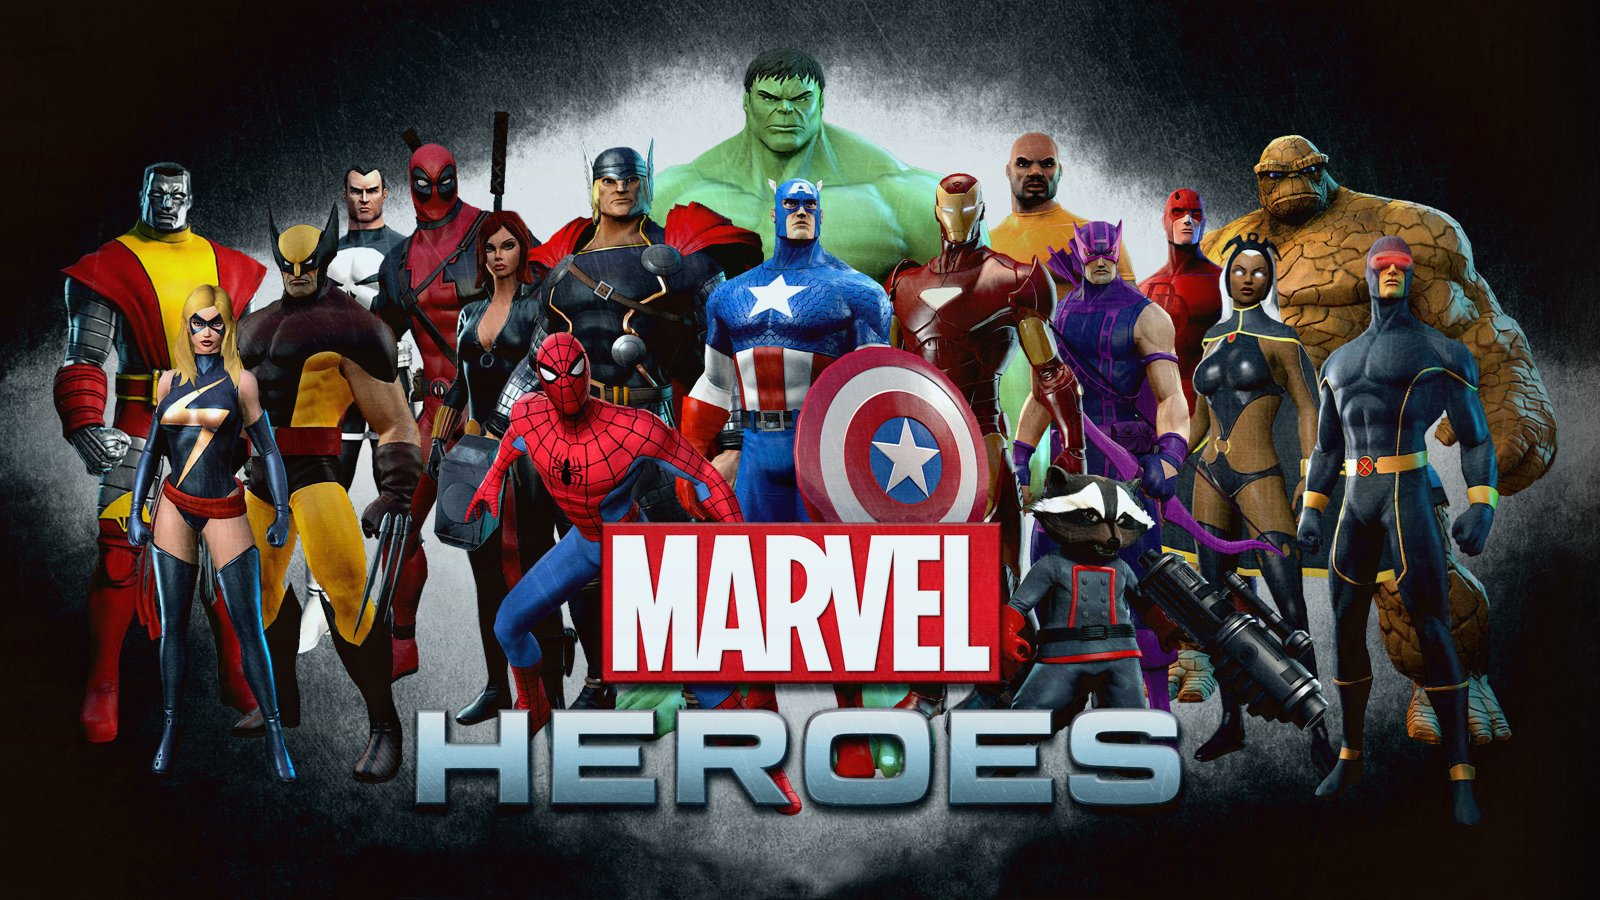 3 Marvel Heroes Hd Wallpapers Background Images Wallpaper Abyss